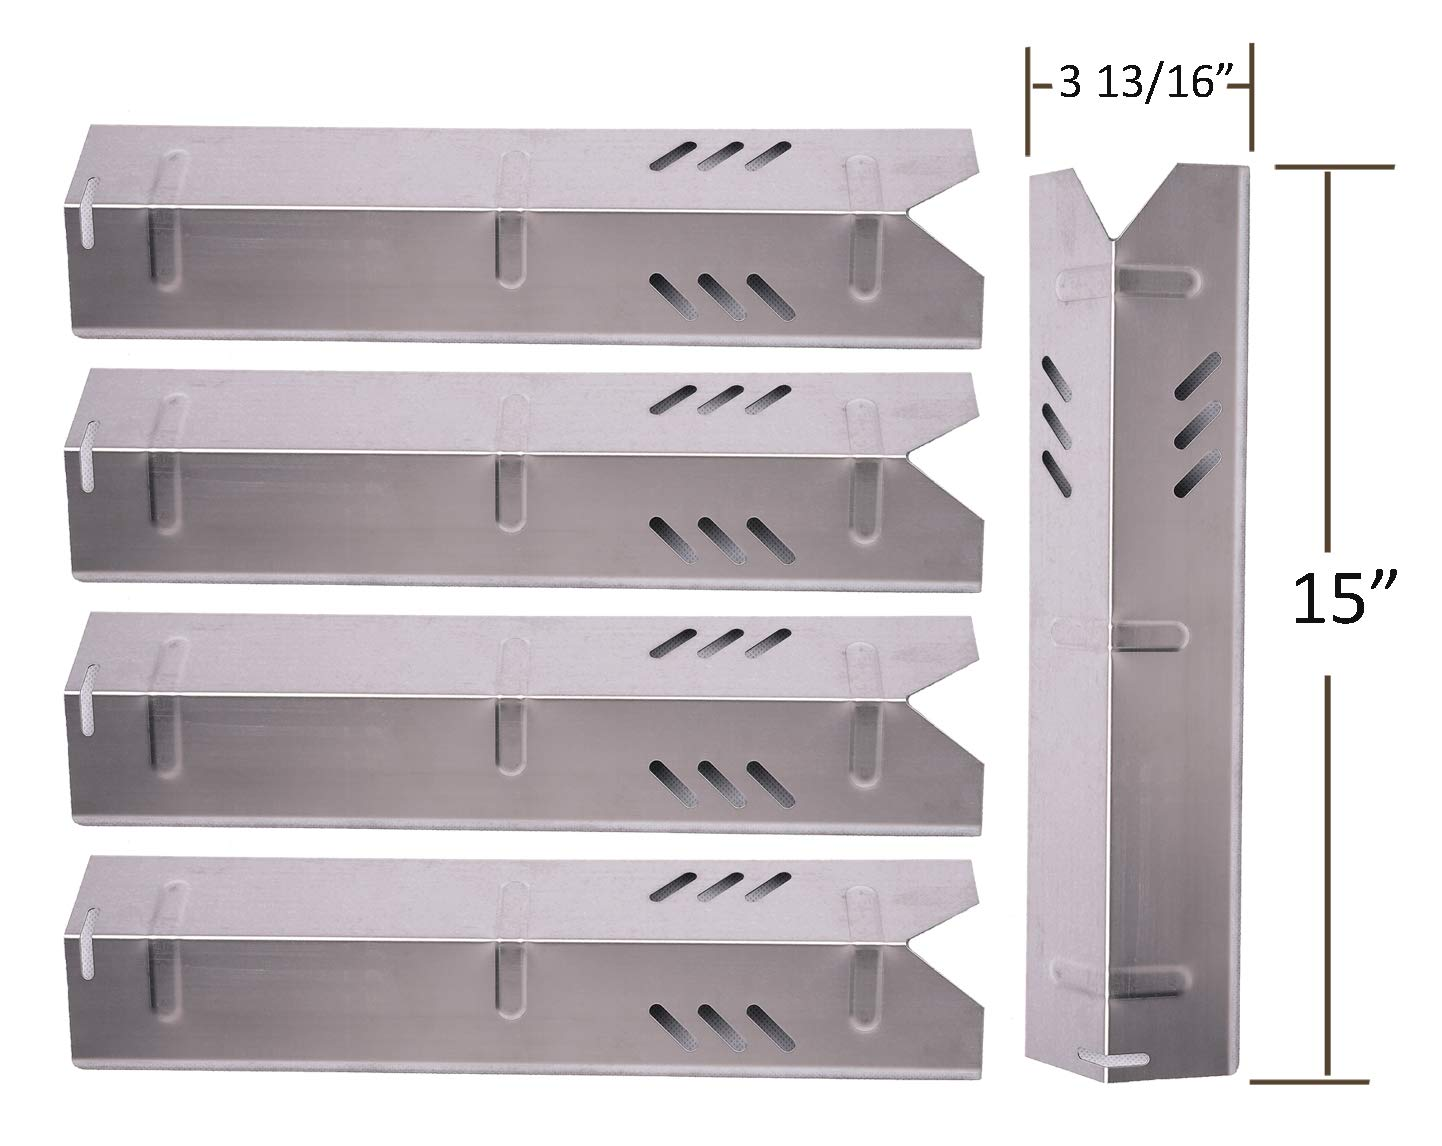 SH1591 (5-pack) Stainless Steel Heat Plate, Heat Shield for Select Gas Grill Models By Uniflame, Lowes Models and Others by BBQ funland